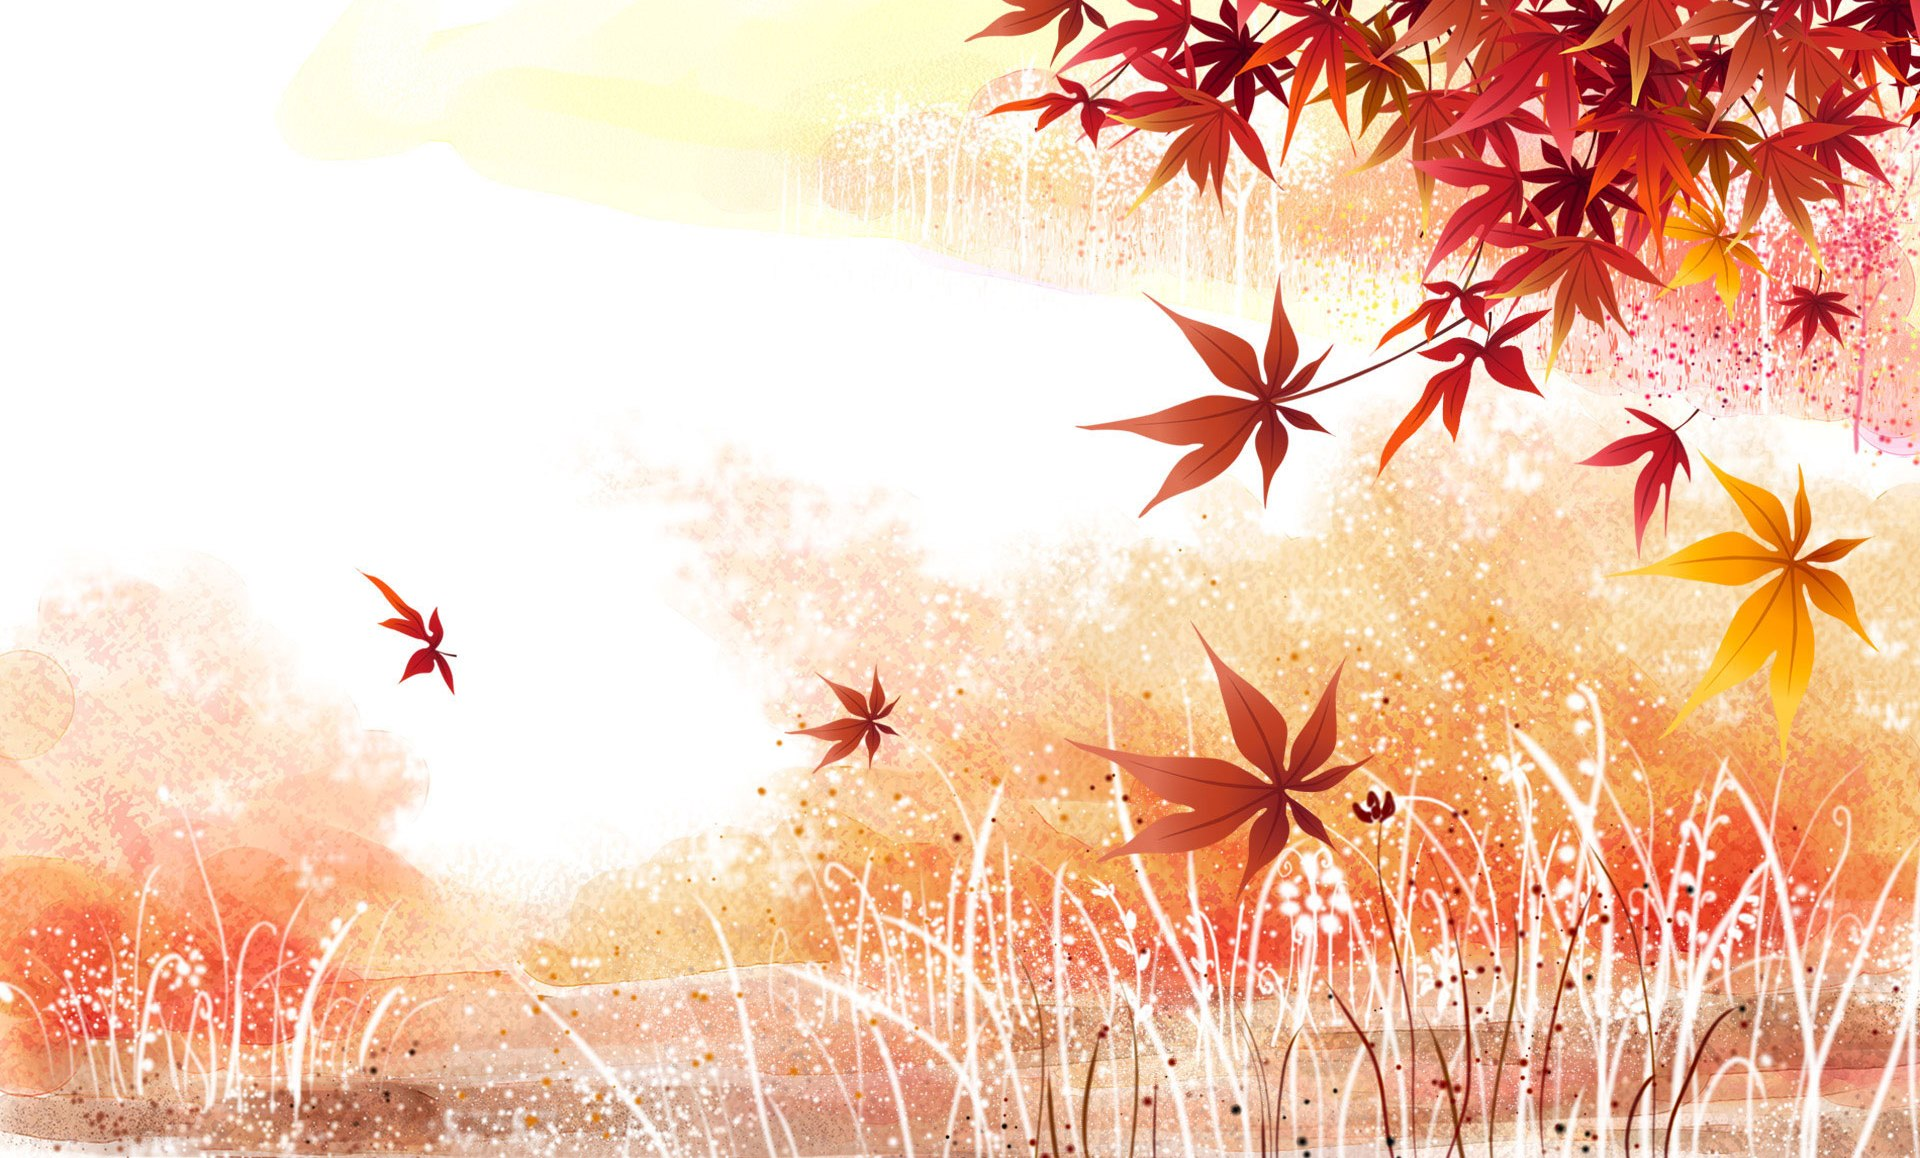 Maple leaves background wallpaper 2011 1920x1158